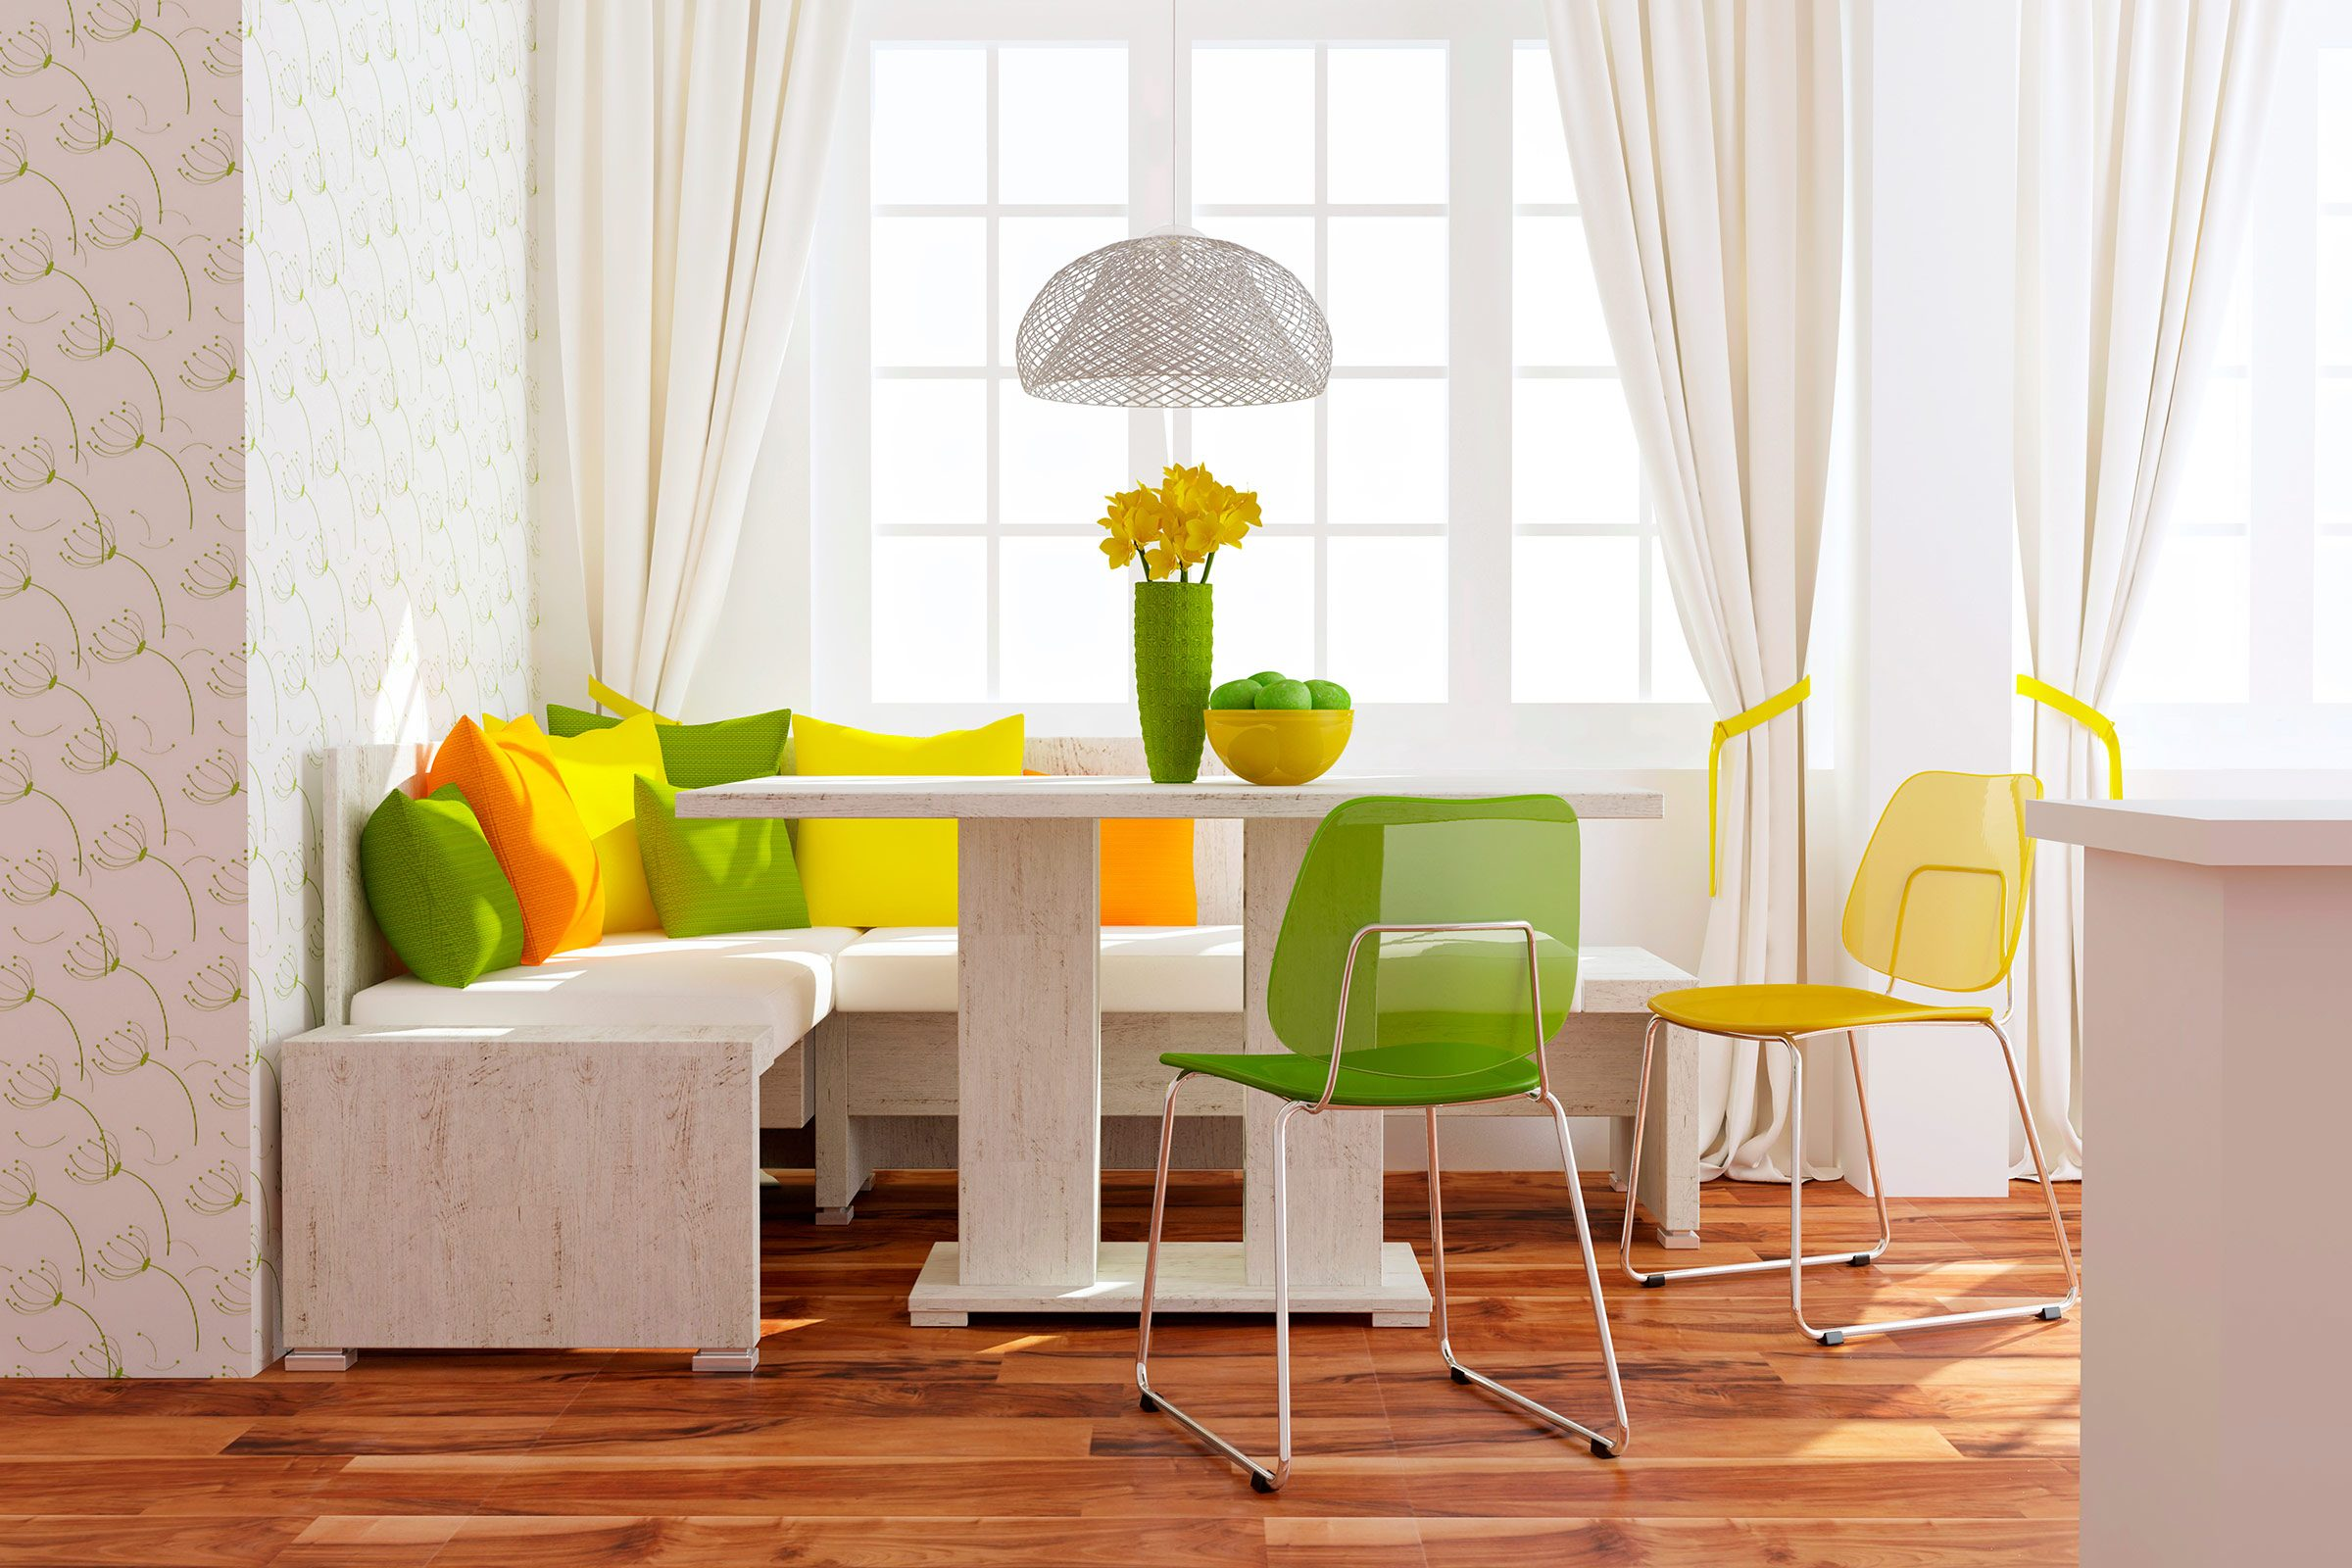 paint color do s and don ts color psychology tips for decorating warm colors